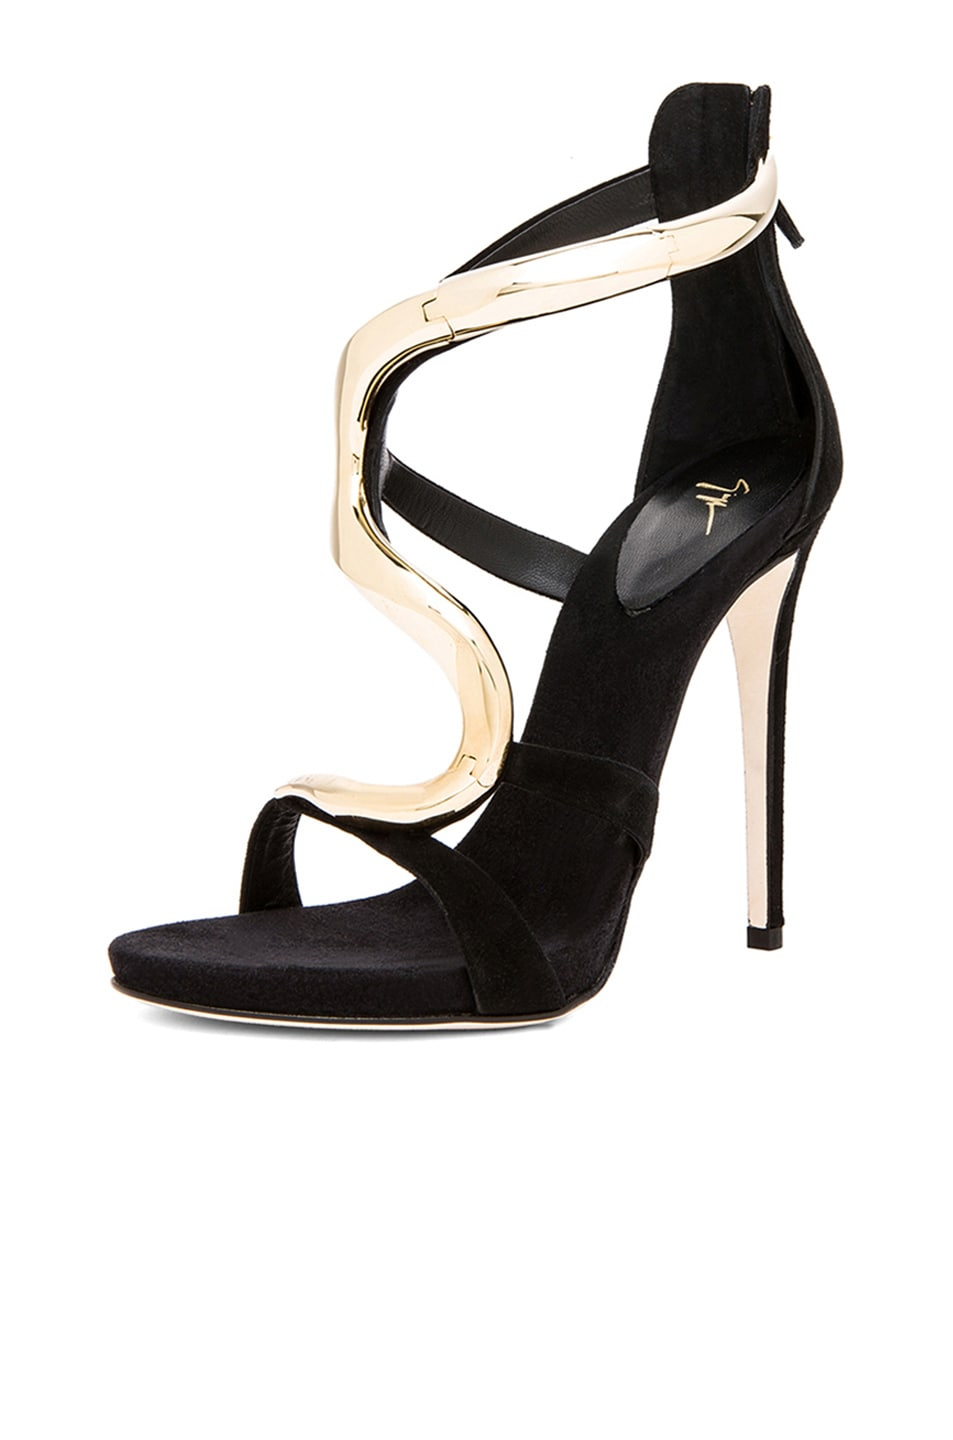 Image 2 of Giuseppe Zanotti Gold Snake Suede Heels in Black Suede